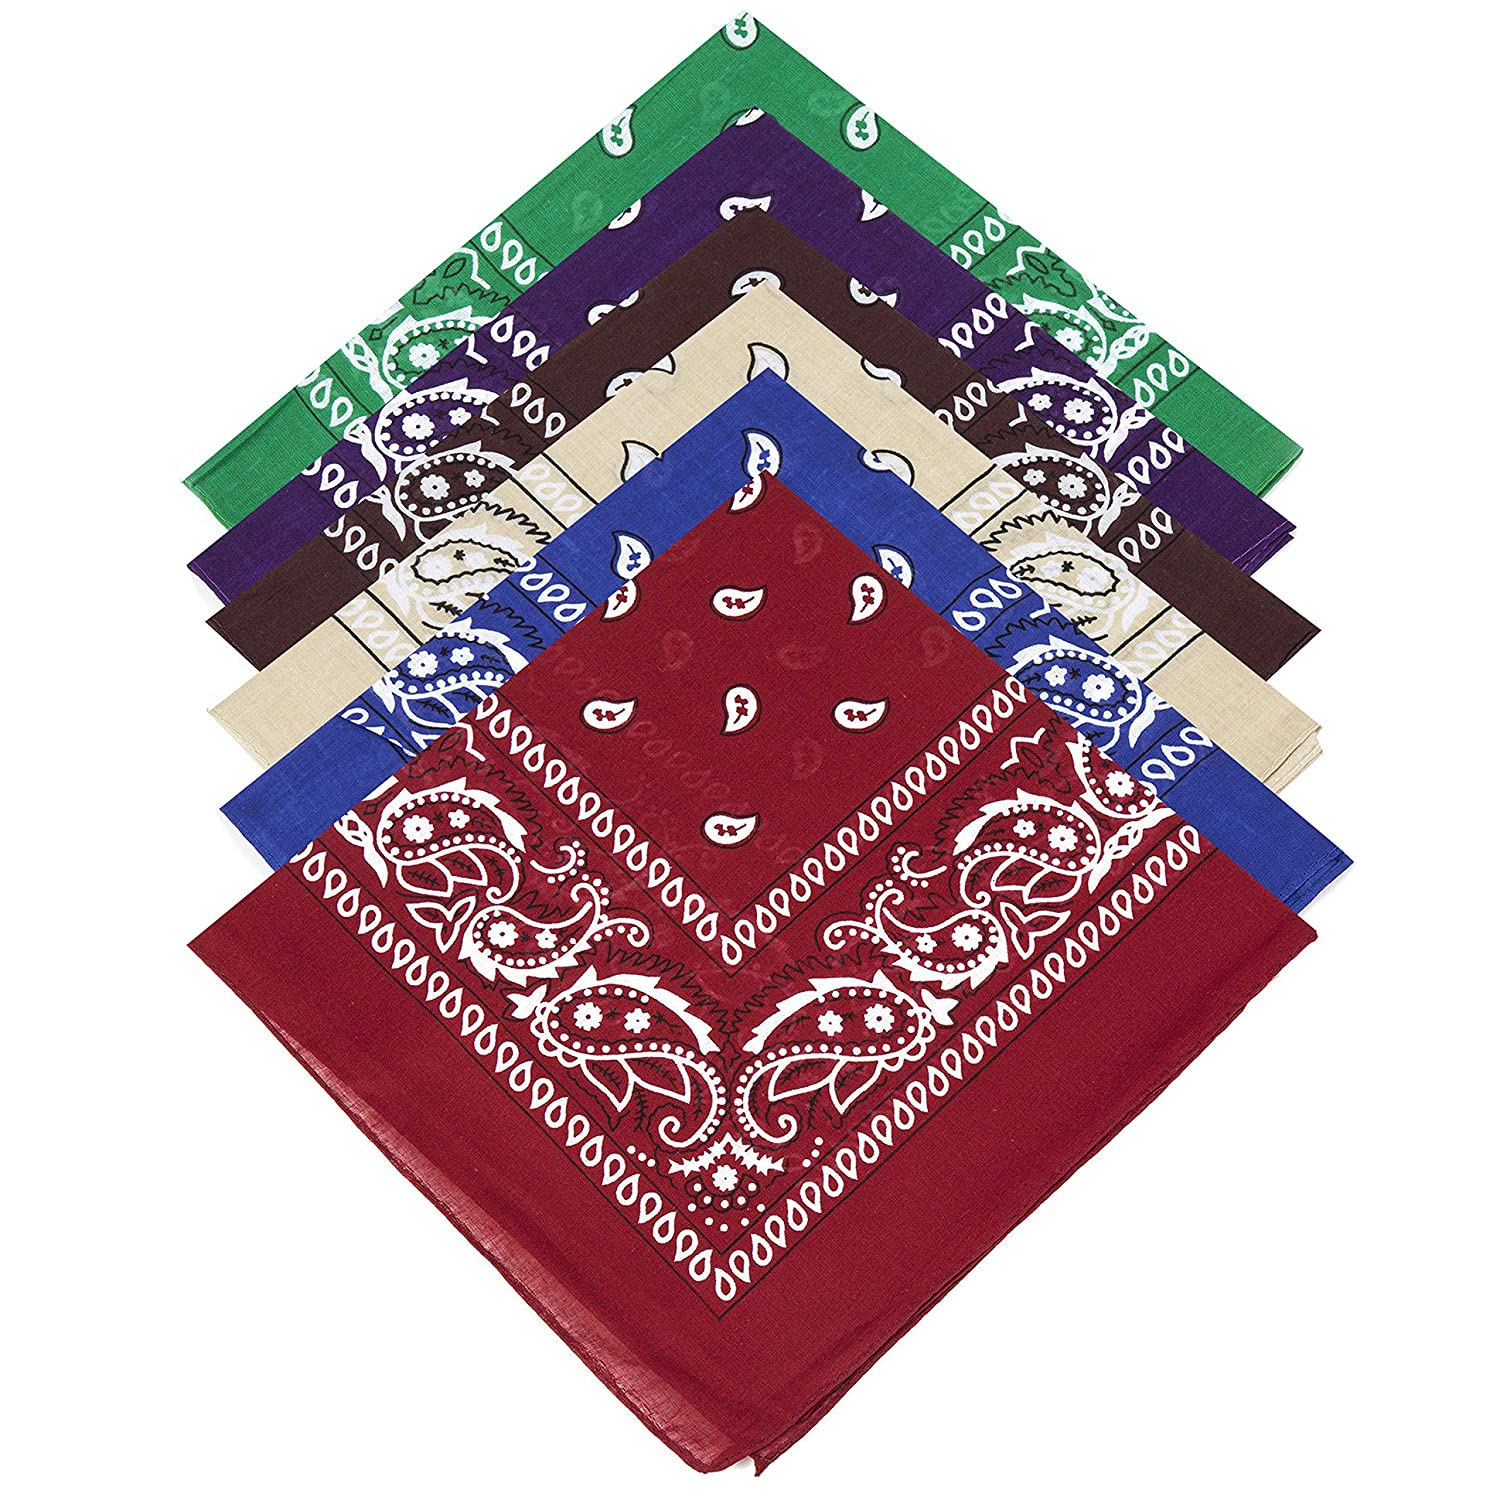 6 Subdued Subtle Colours Unisex 100% Cotton Paisley Bandanas